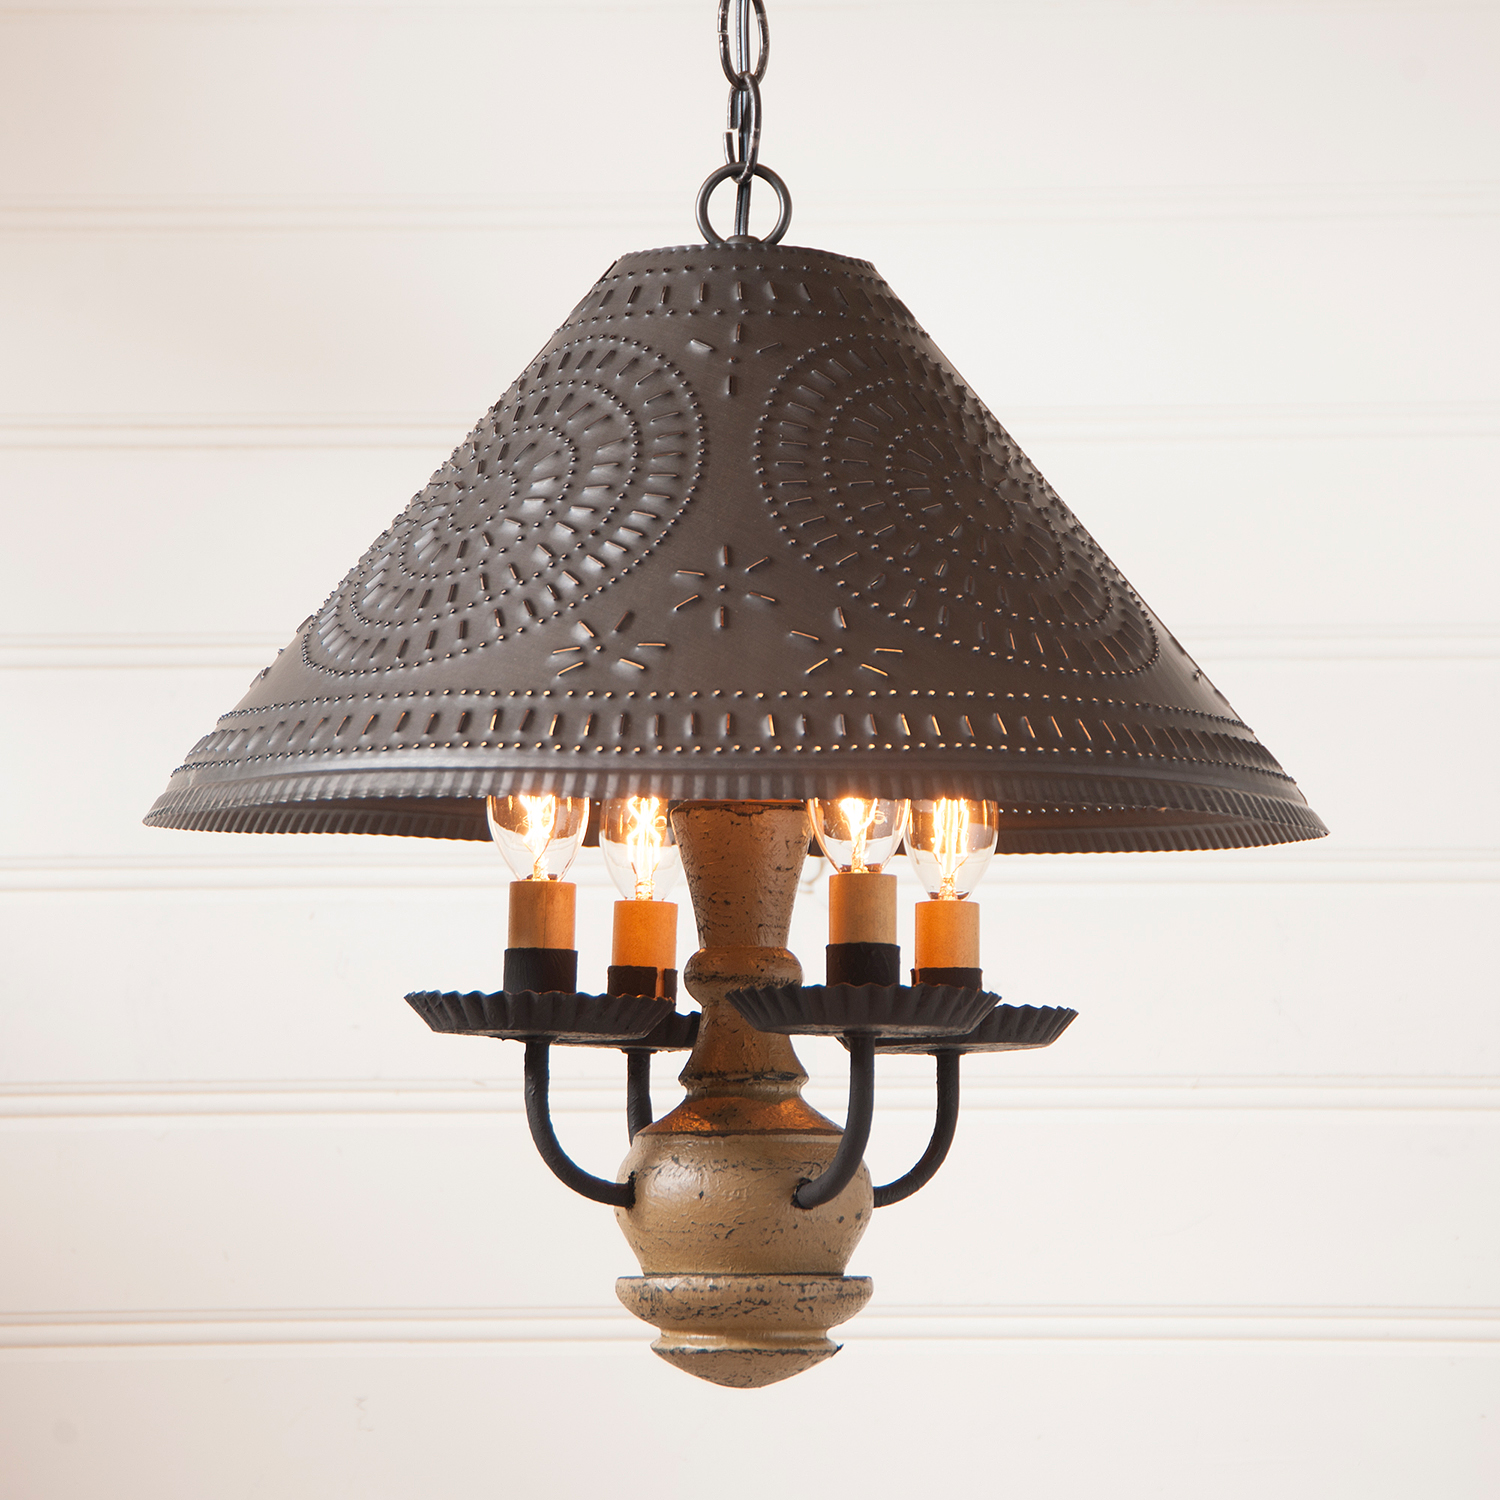 Wooden Homespun Shade Light in Pearwood